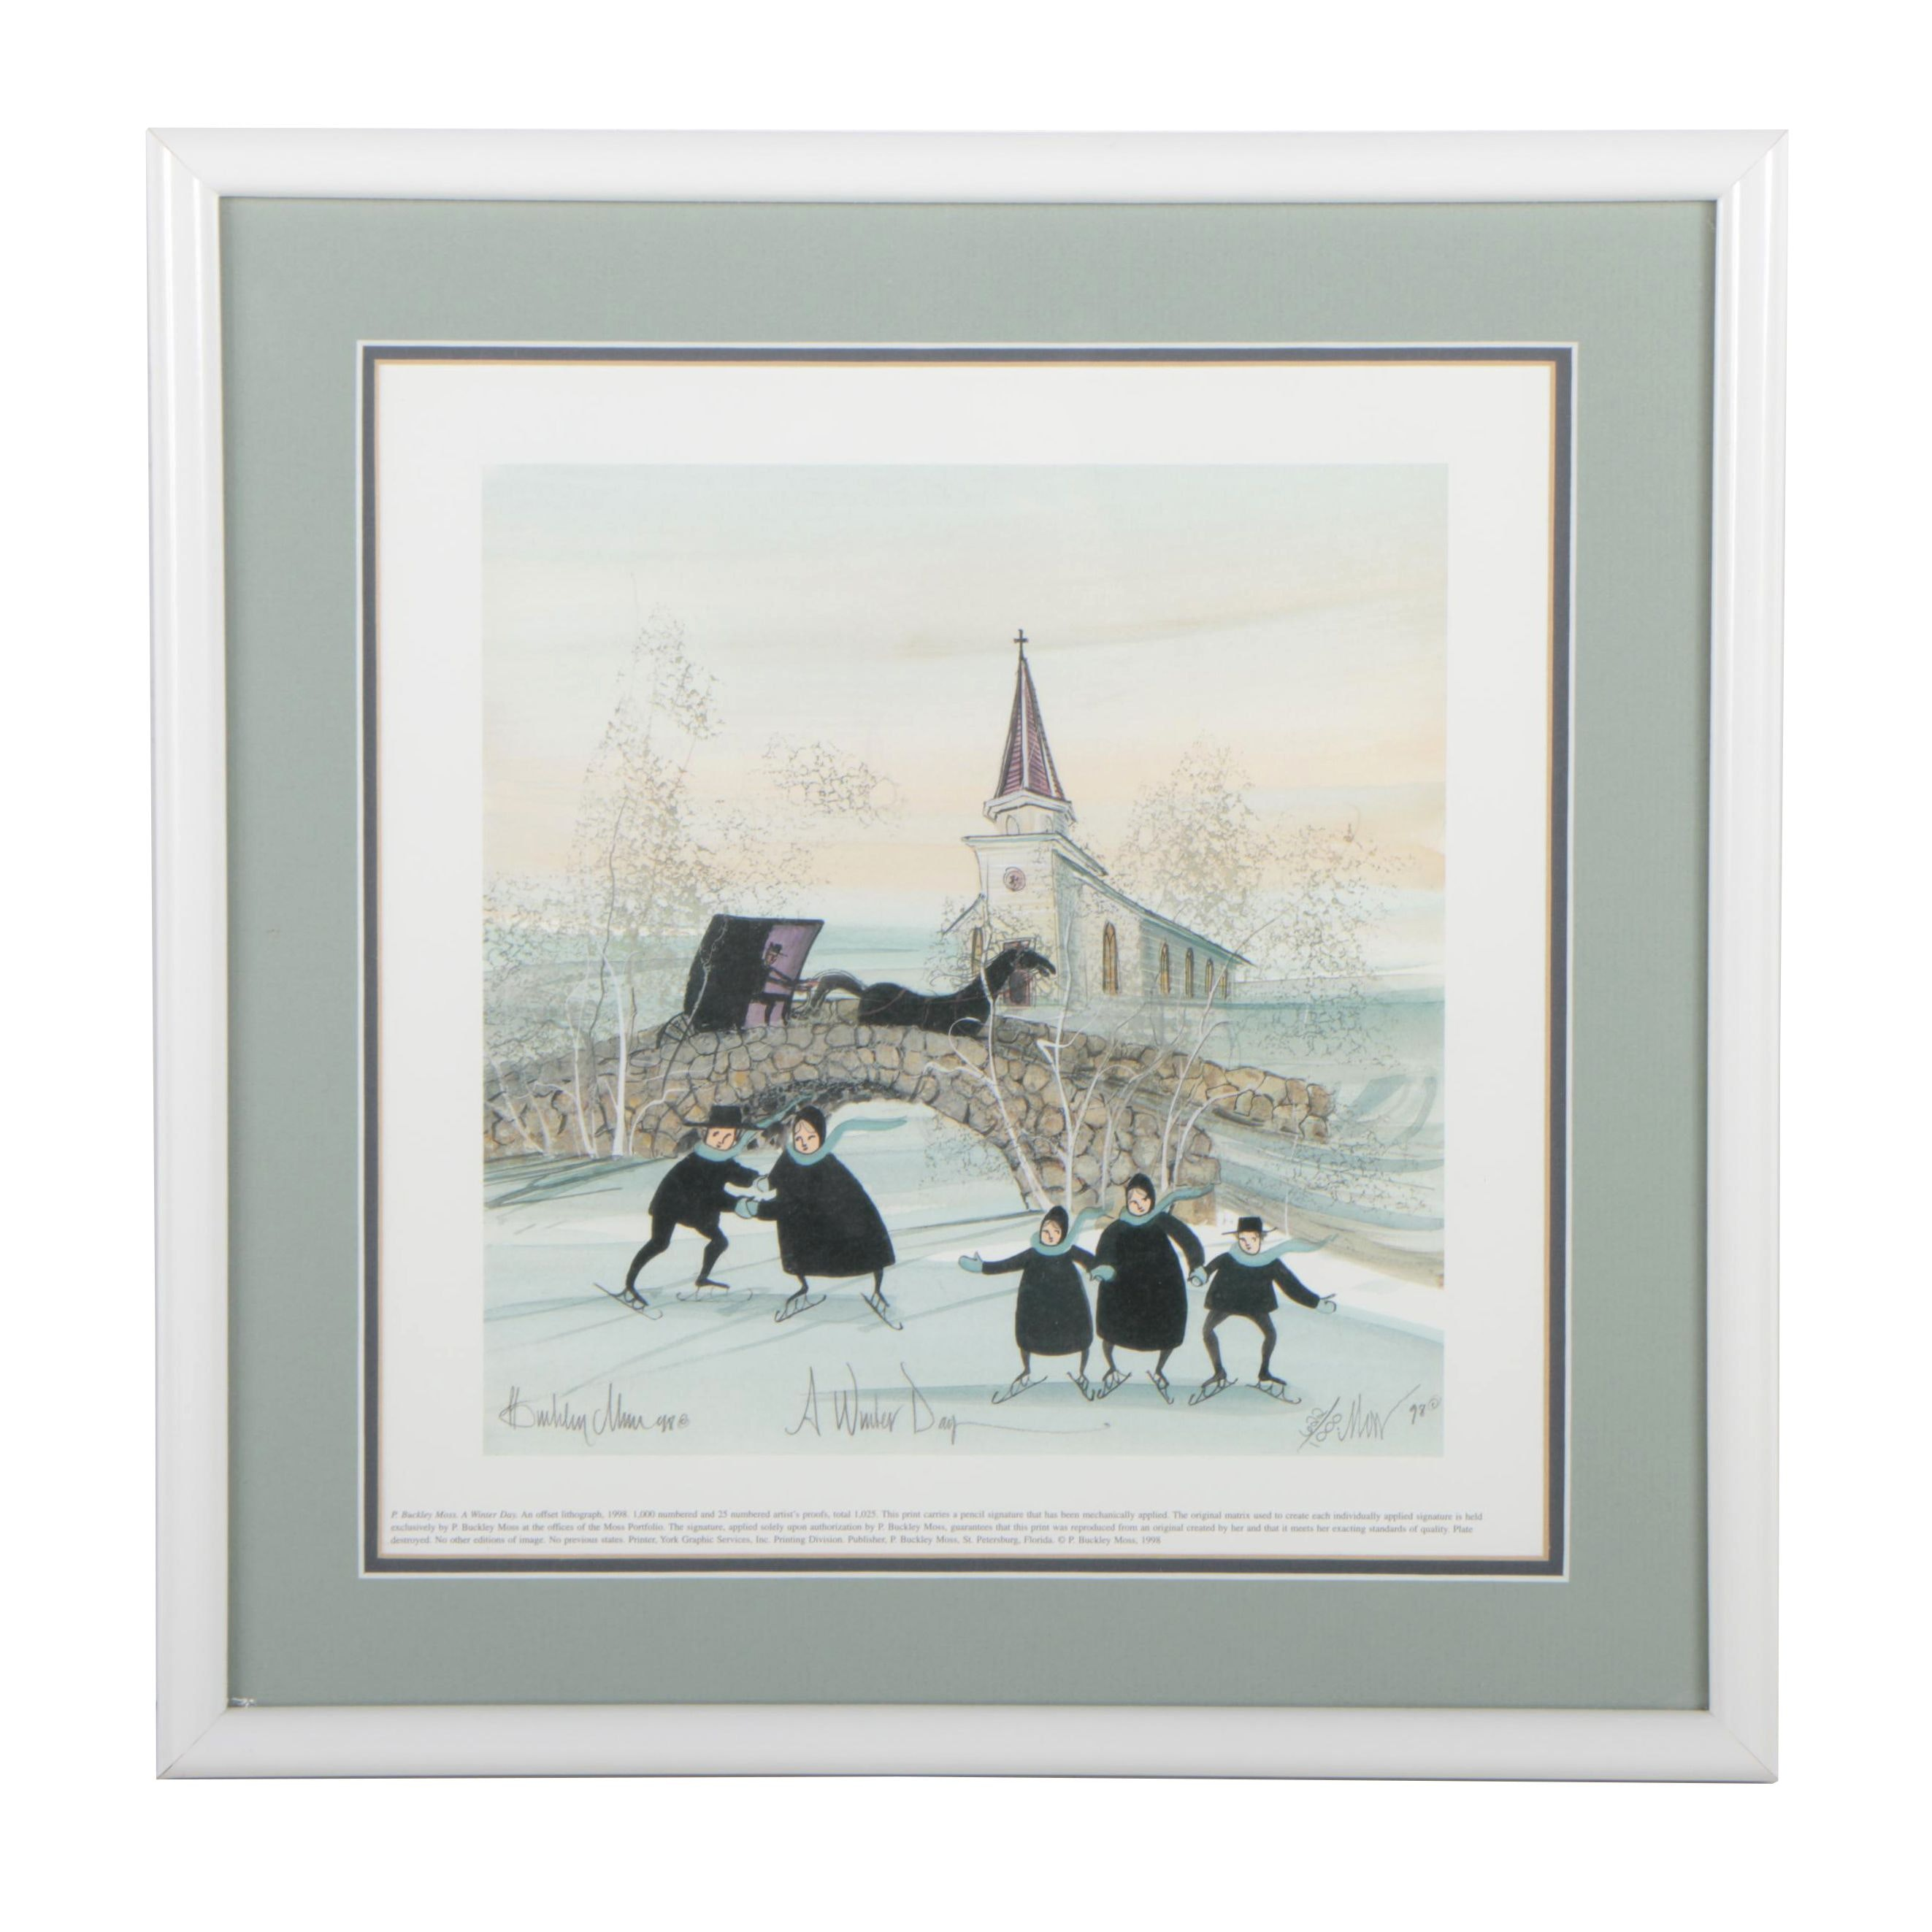 """P. Buckley Moss Limited Edition Offset Lithograph """"A Winter Day"""""""